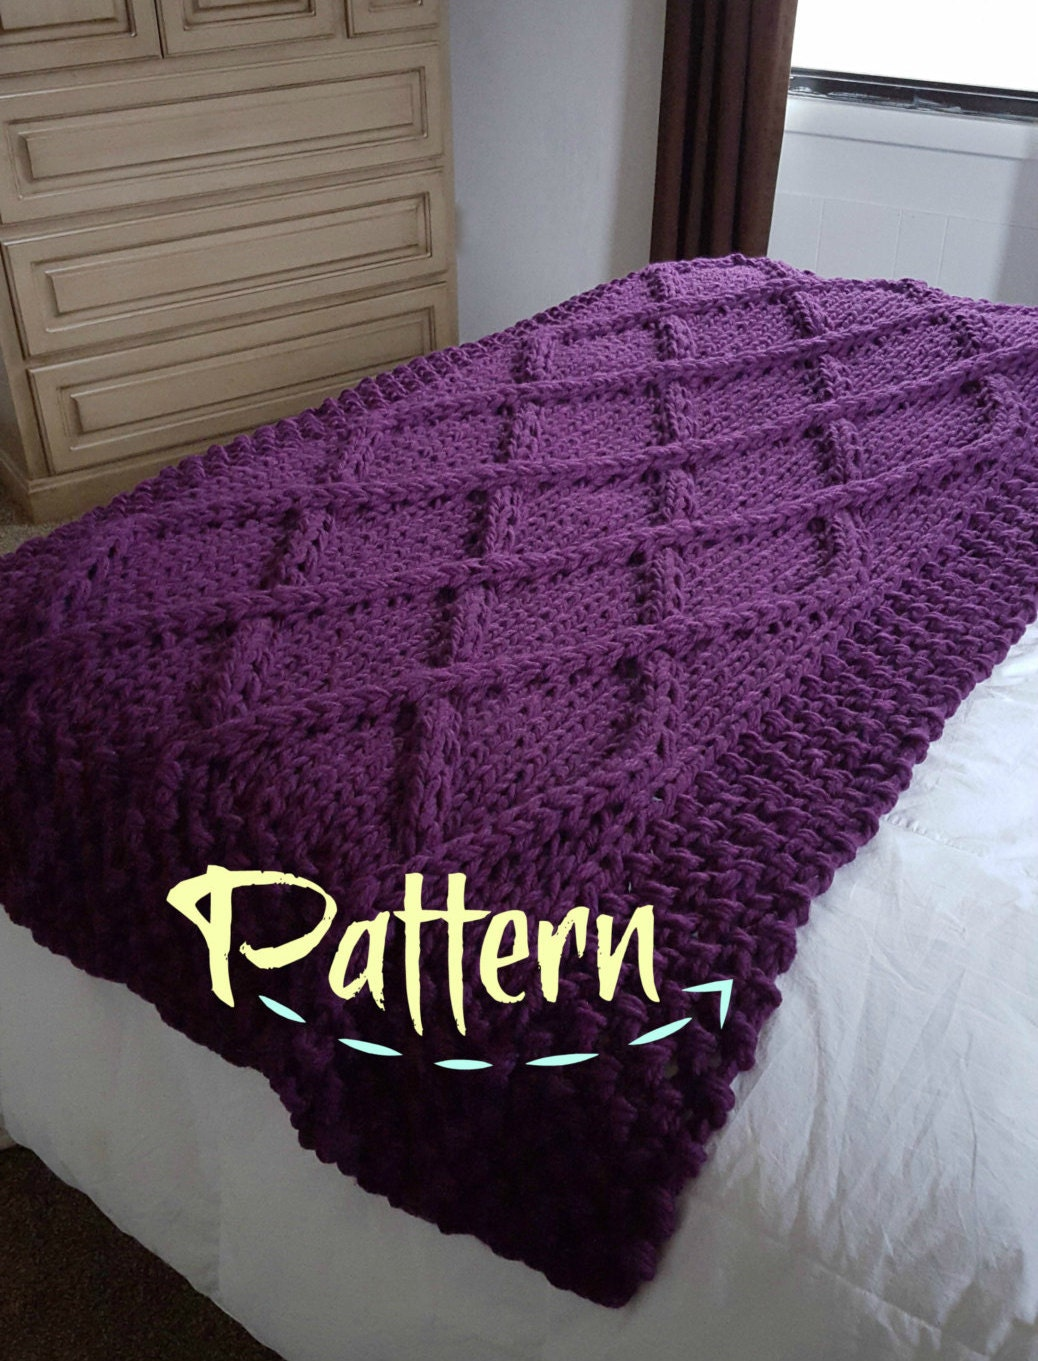 Cable Knit Throw Pattern : Lattice Cable Knit Blanket PATTERN by OzarksMomma on Etsy